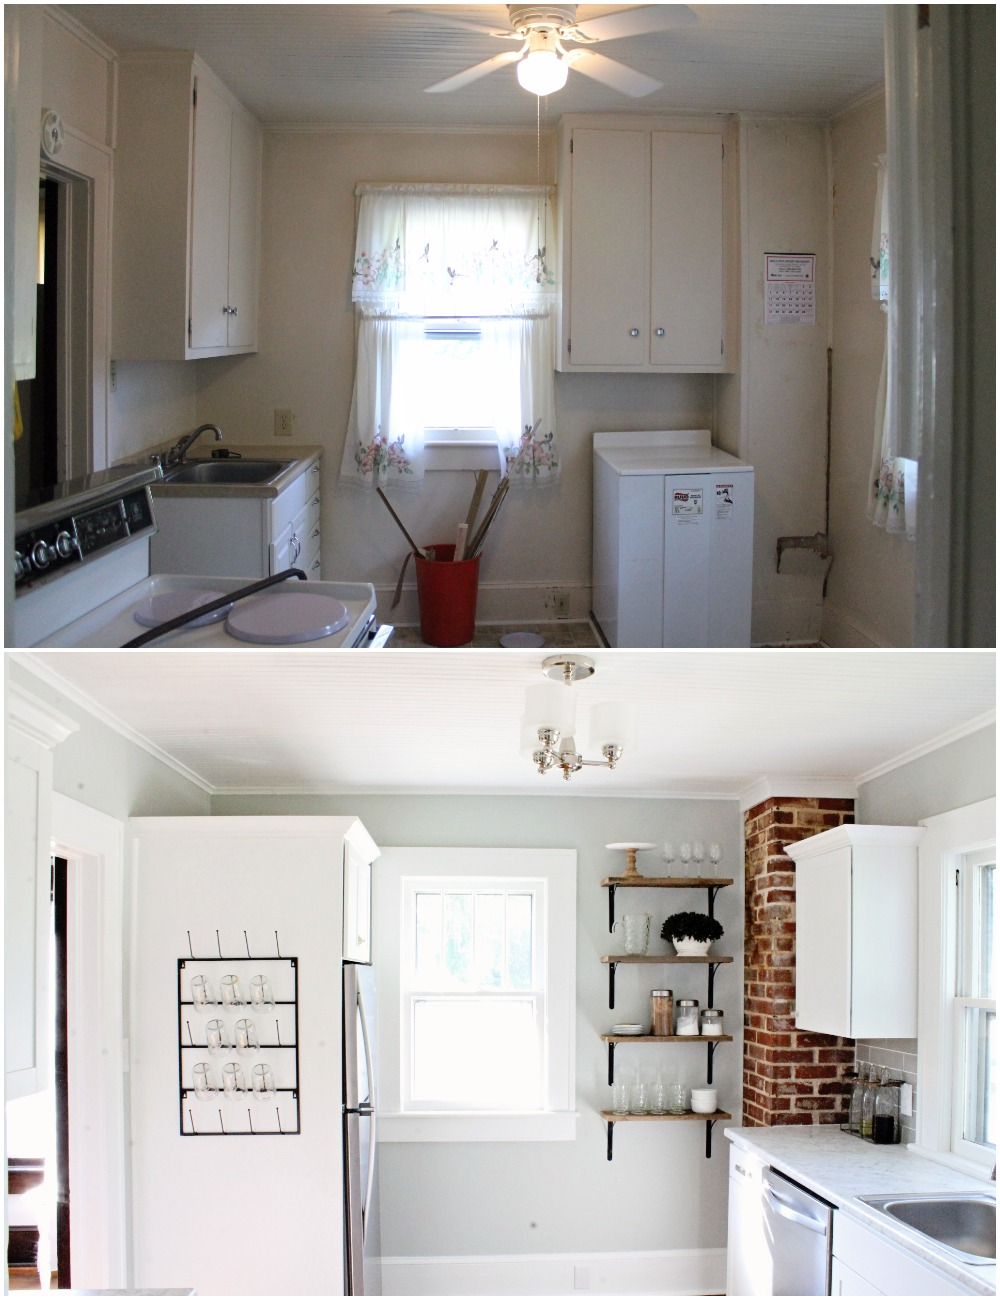 House Flipping Before and Afters - Budget Kitchen Renovation, Cheap Cabinets, Cheap Countertops - Sherwin Williams Silver Strand 19